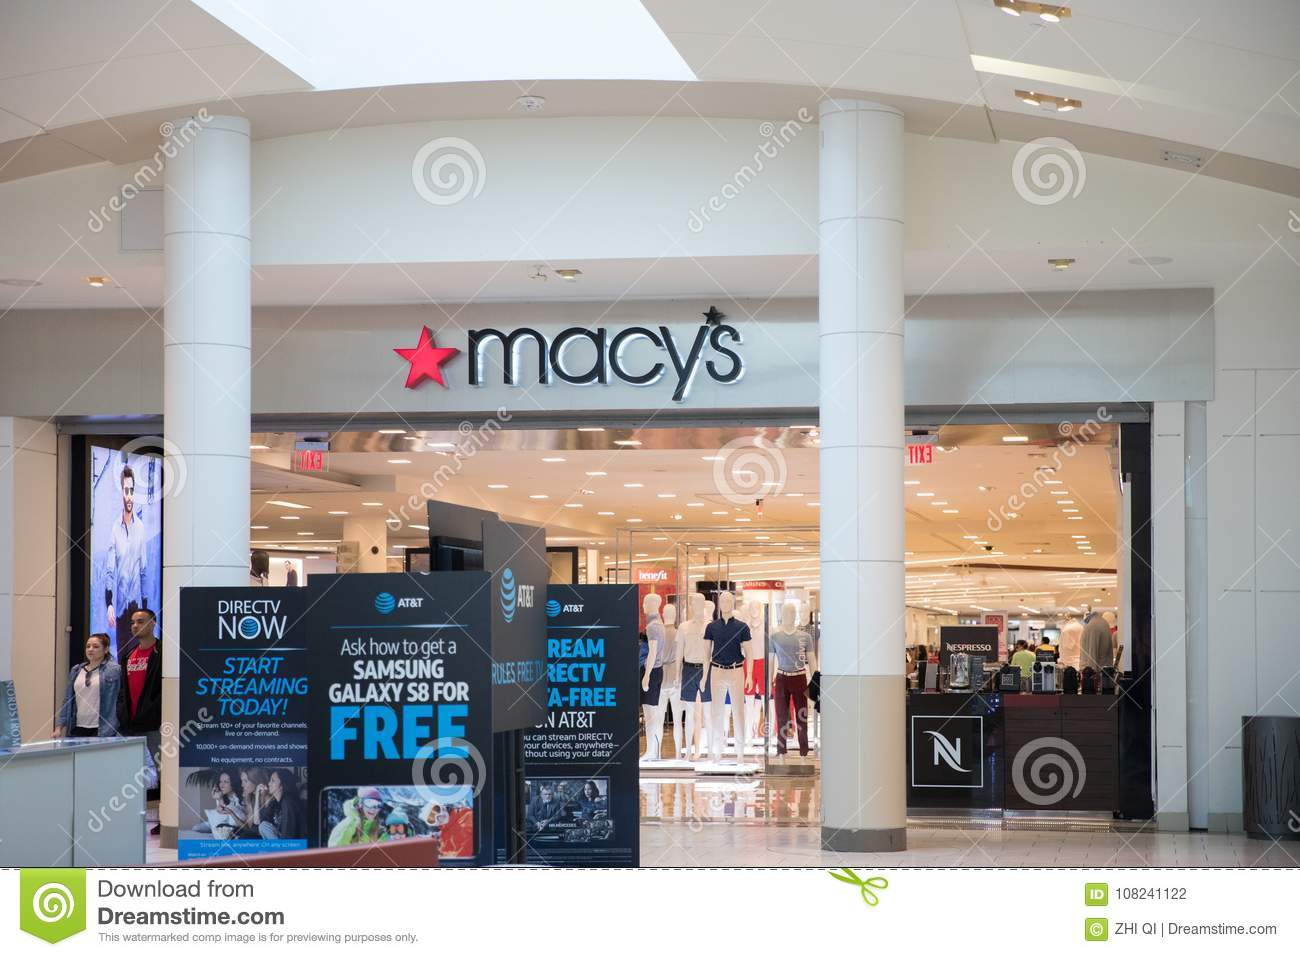 Macys Department Store  Macy`s, Inc  Is One Of The Nation`s